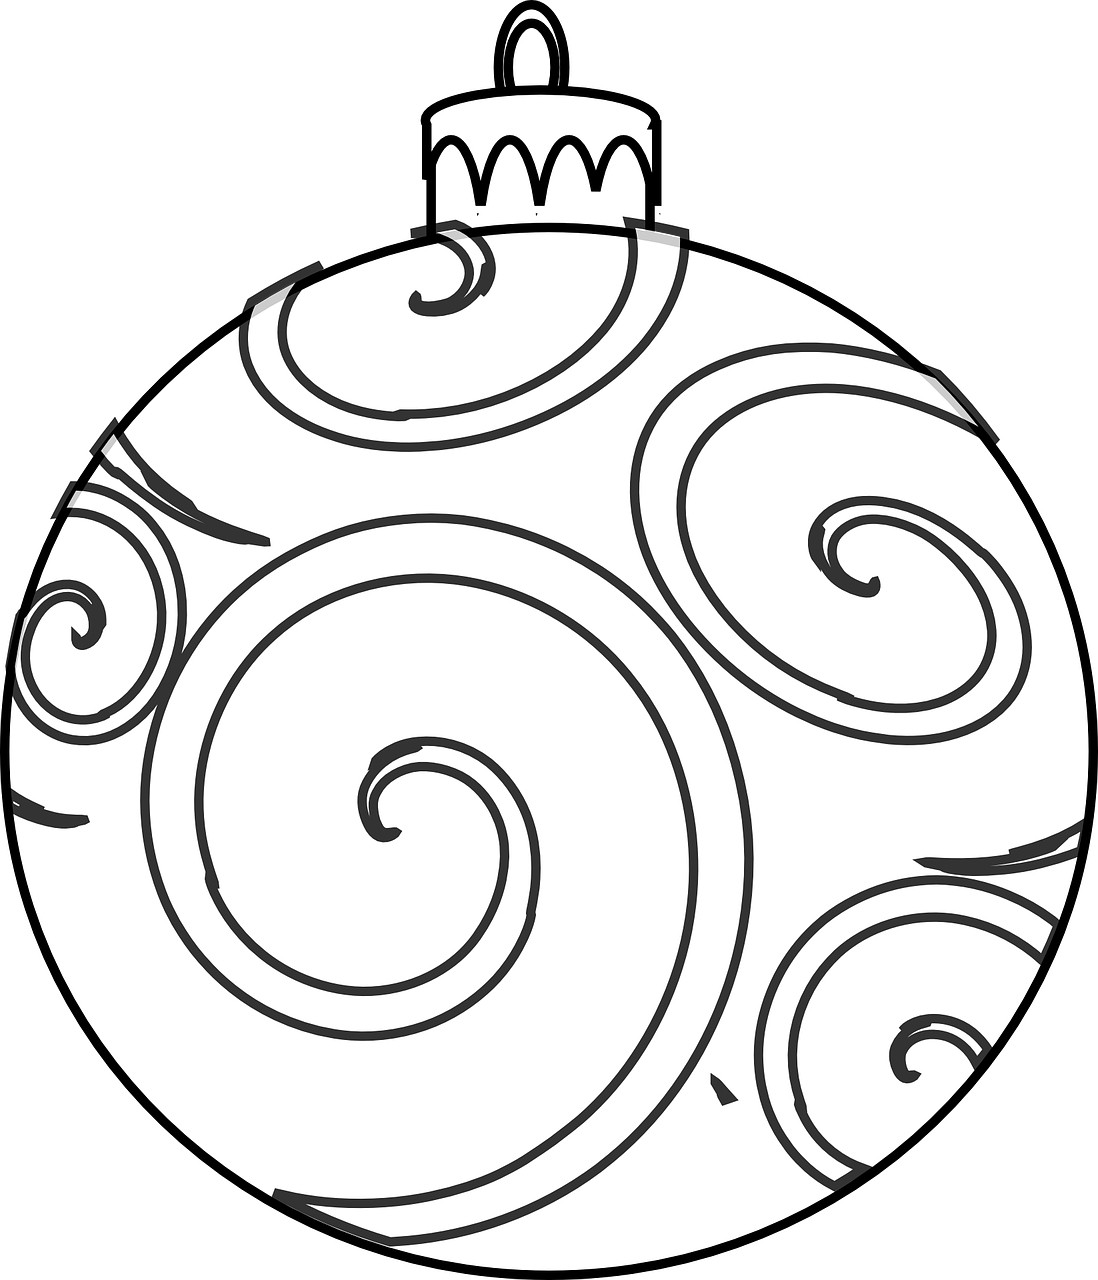 Christmas Ornaments Coloring Pages For Adults With Ornament Wallpapers Wide Inside Csad Me